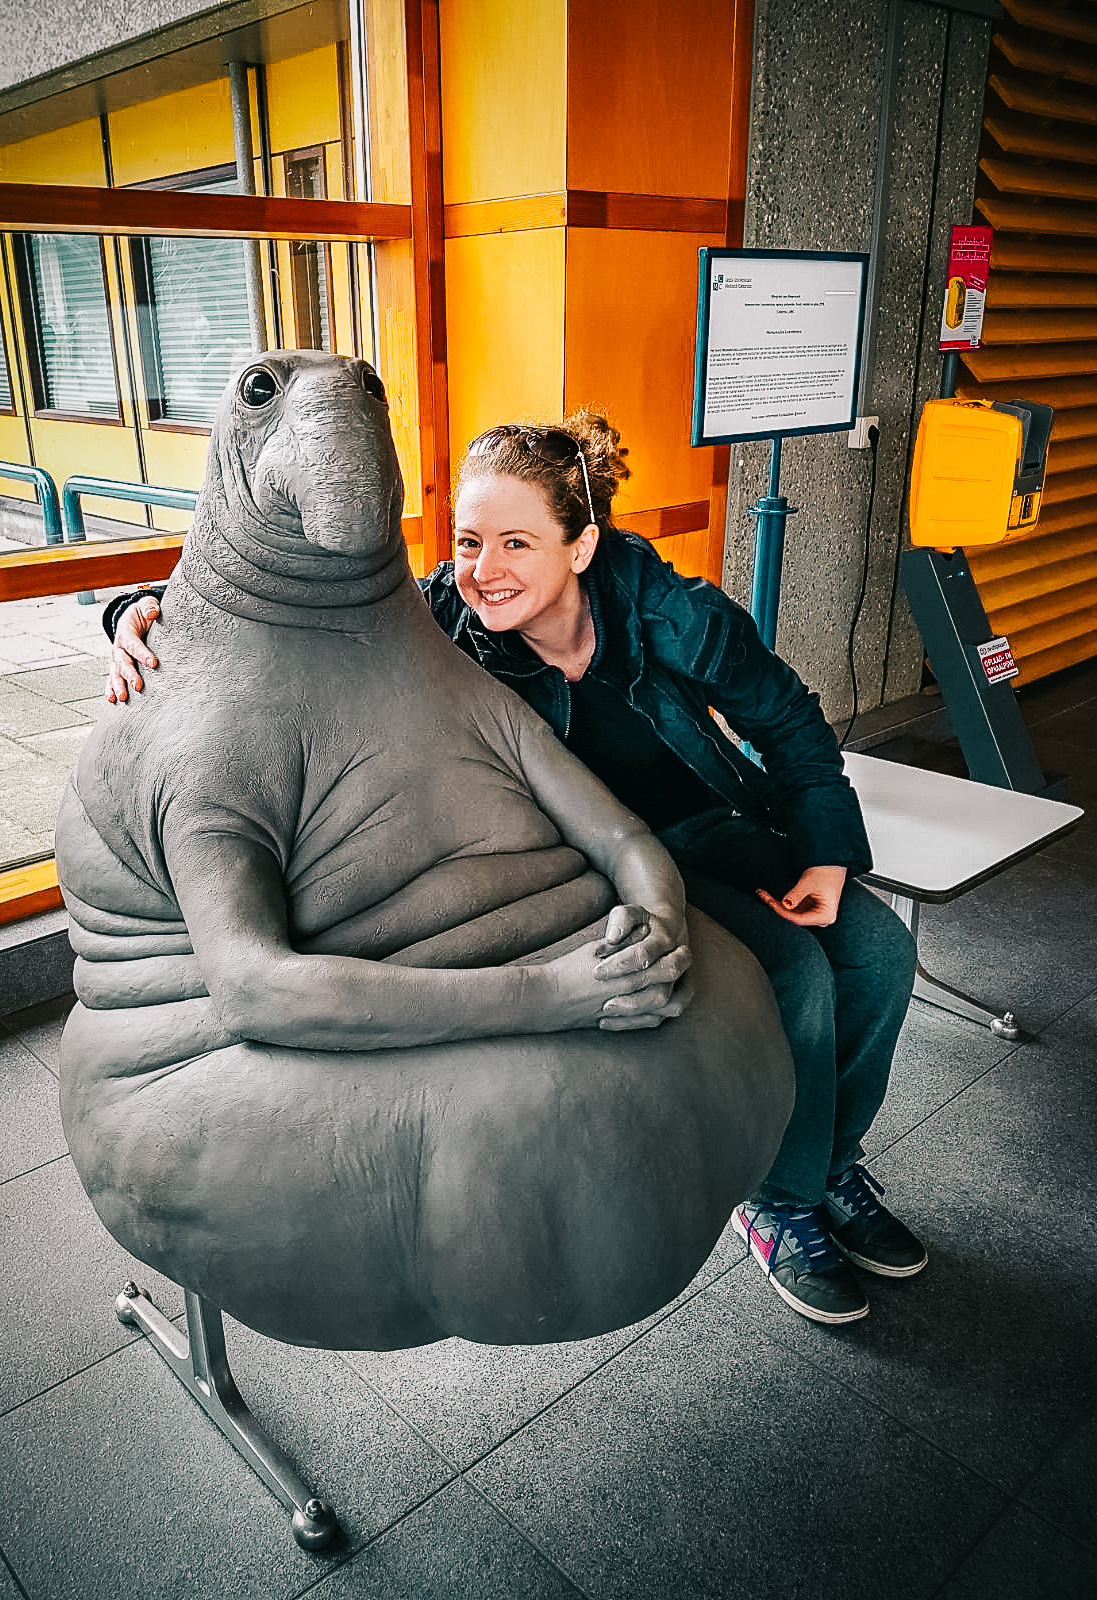 A rare pepe. Obviously I didn't take this photo but here I am next to perhaps my favourite sculpture in the world. He,  Zhdun as he is known in Russia, is a creation of a Dutch artist for the children's hospital . He is patiently waiting in the lobby of a Leiden hospital now.